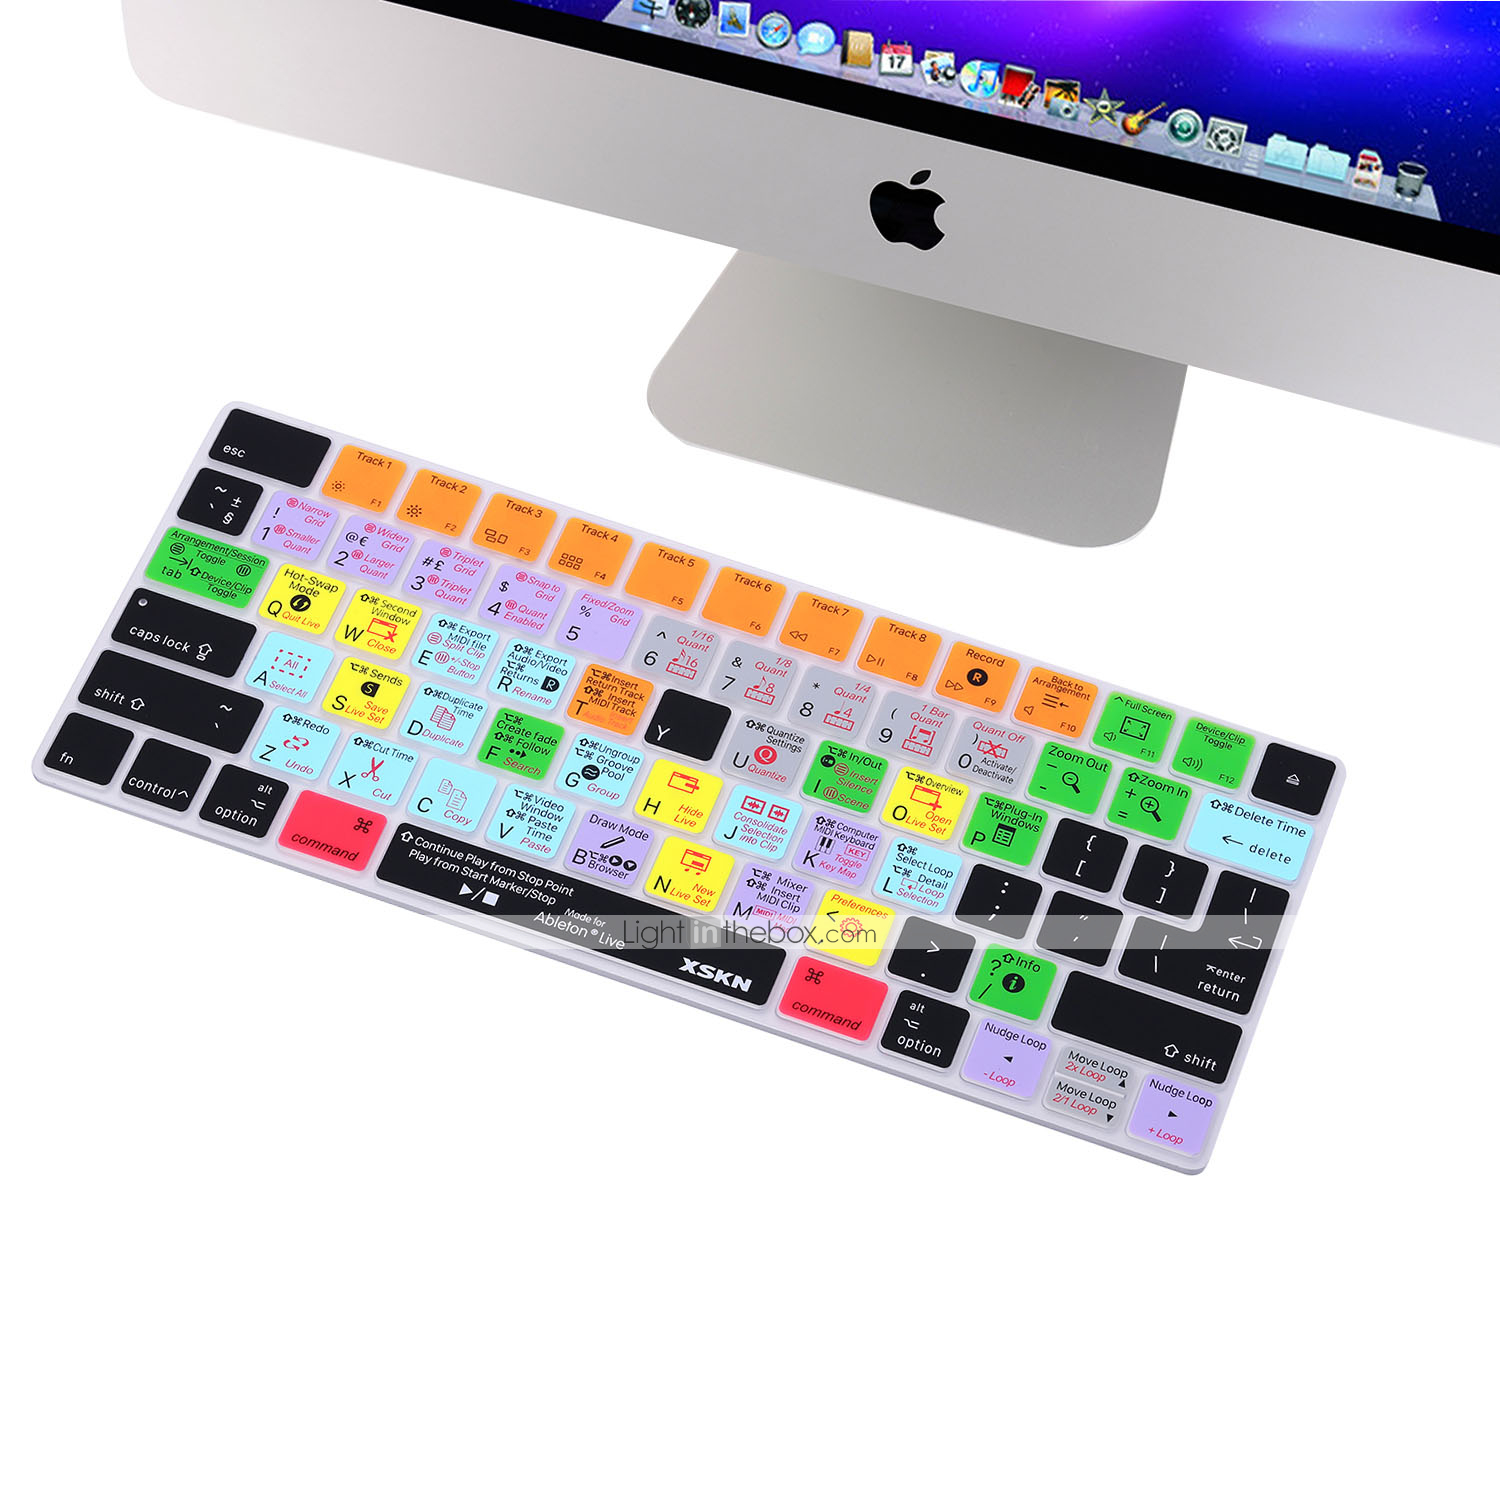 XSKN® Ableton Live Suite Shortcut Silicone Keyboard Skin for Magic Keyboard  2015 Version (US/EU Layout)